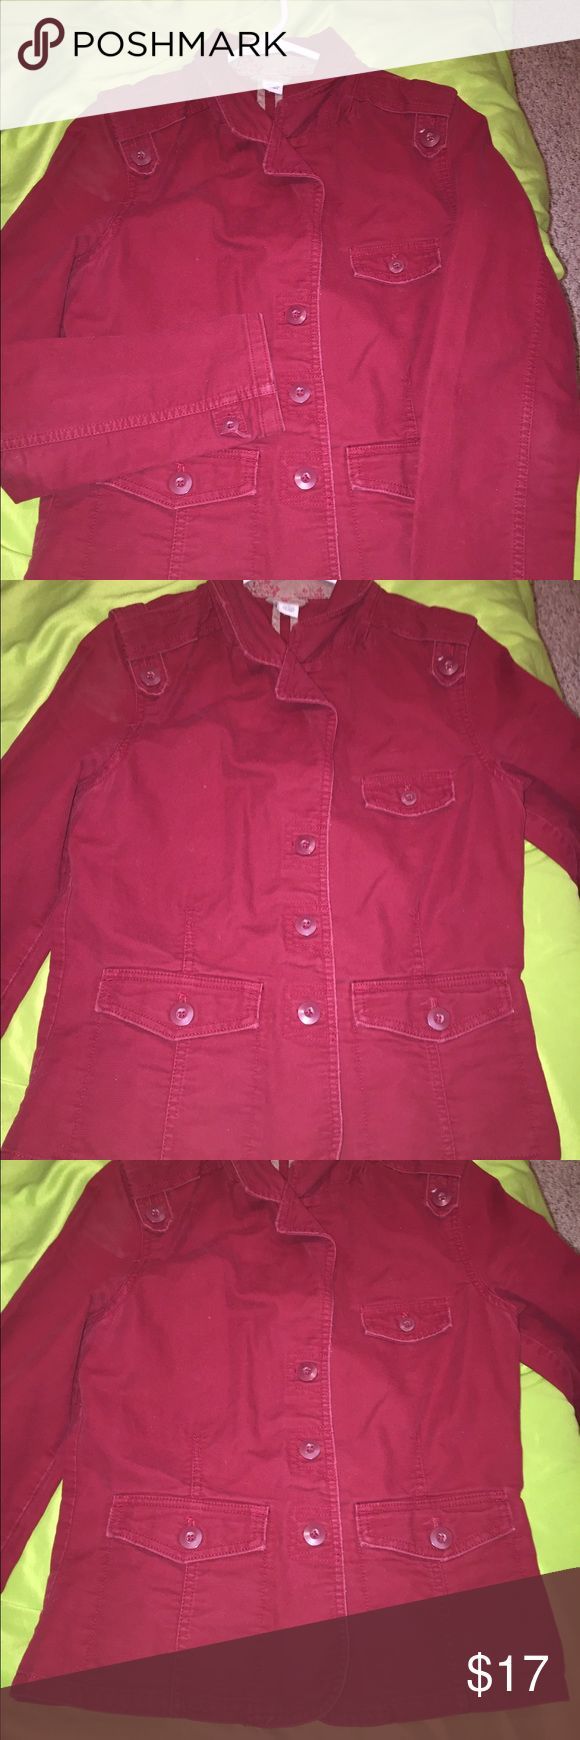 EUC! Old Navy medium Moto coat EUC. Old Navy red Moto coat, size medium. 3 button closure, but on each cuff, button detail on shoulders. Old Navy Jackets & Coats